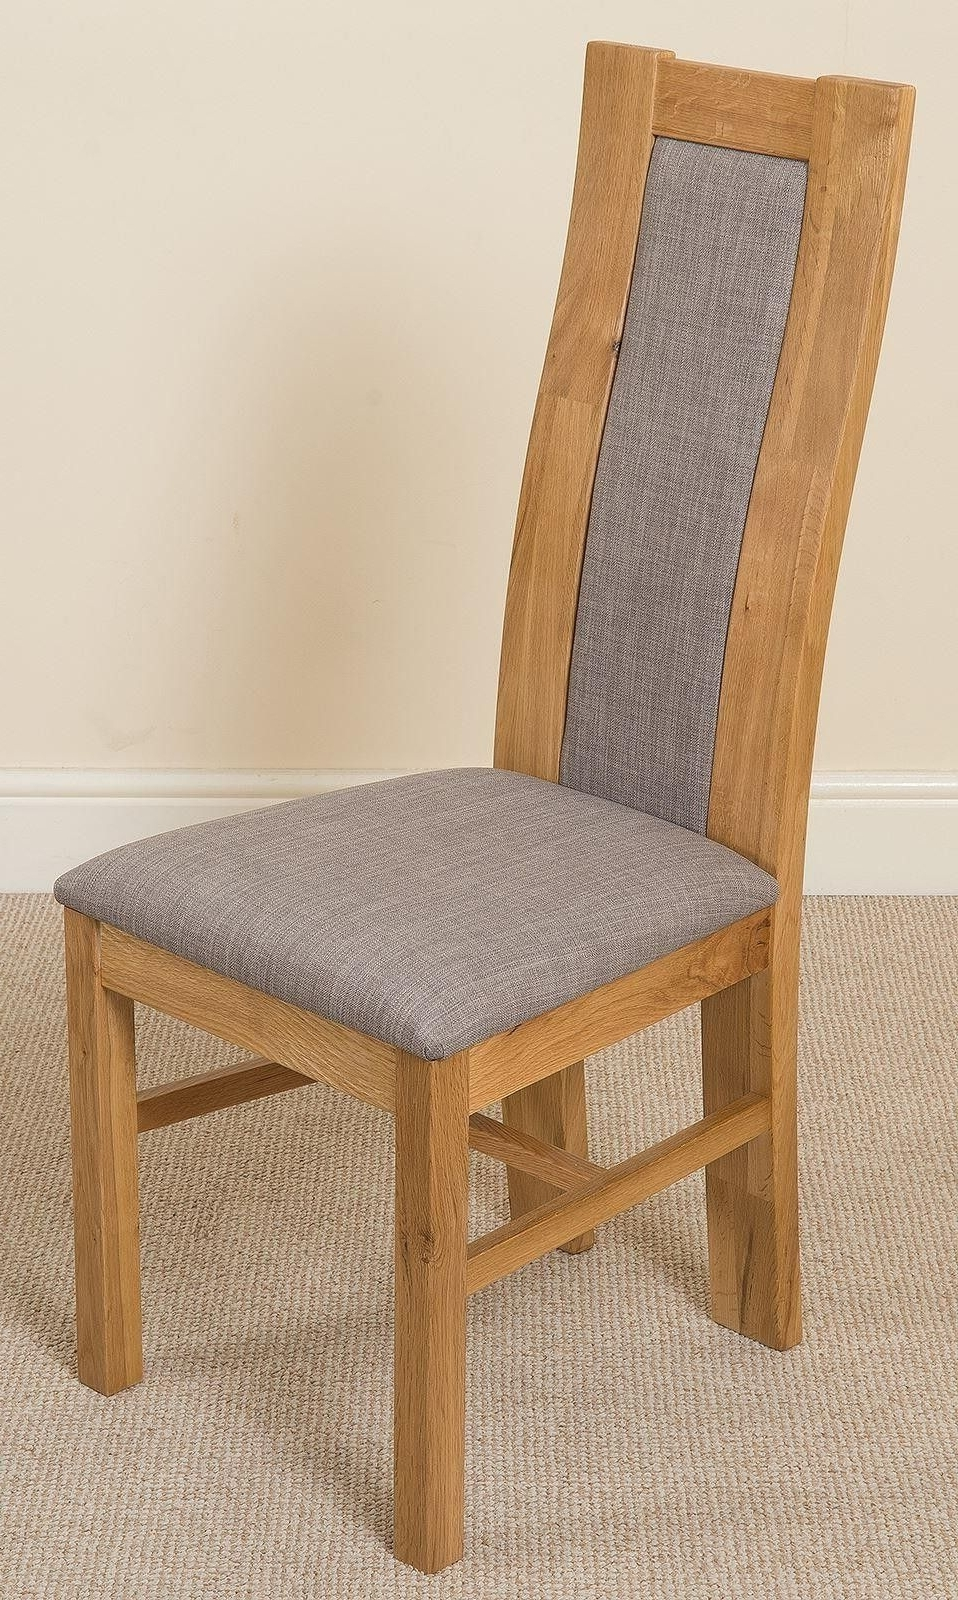 [%Stanford Solid Oak Dining Chair [Light Oak And Grey Fabric] The Very Regarding 2018 Oak Dining Chairs|Oak Dining Chairs In Preferred Stanford Solid Oak Dining Chair [Light Oak And Grey Fabric] The Very|Widely Used Oak Dining Chairs Inside Stanford Solid Oak Dining Chair [Light Oak And Grey Fabric] The Very|Well Known Stanford Solid Oak Dining Chair [Light Oak And Grey Fabric] The Very Within Oak Dining Chairs%] (View 10 of 25)